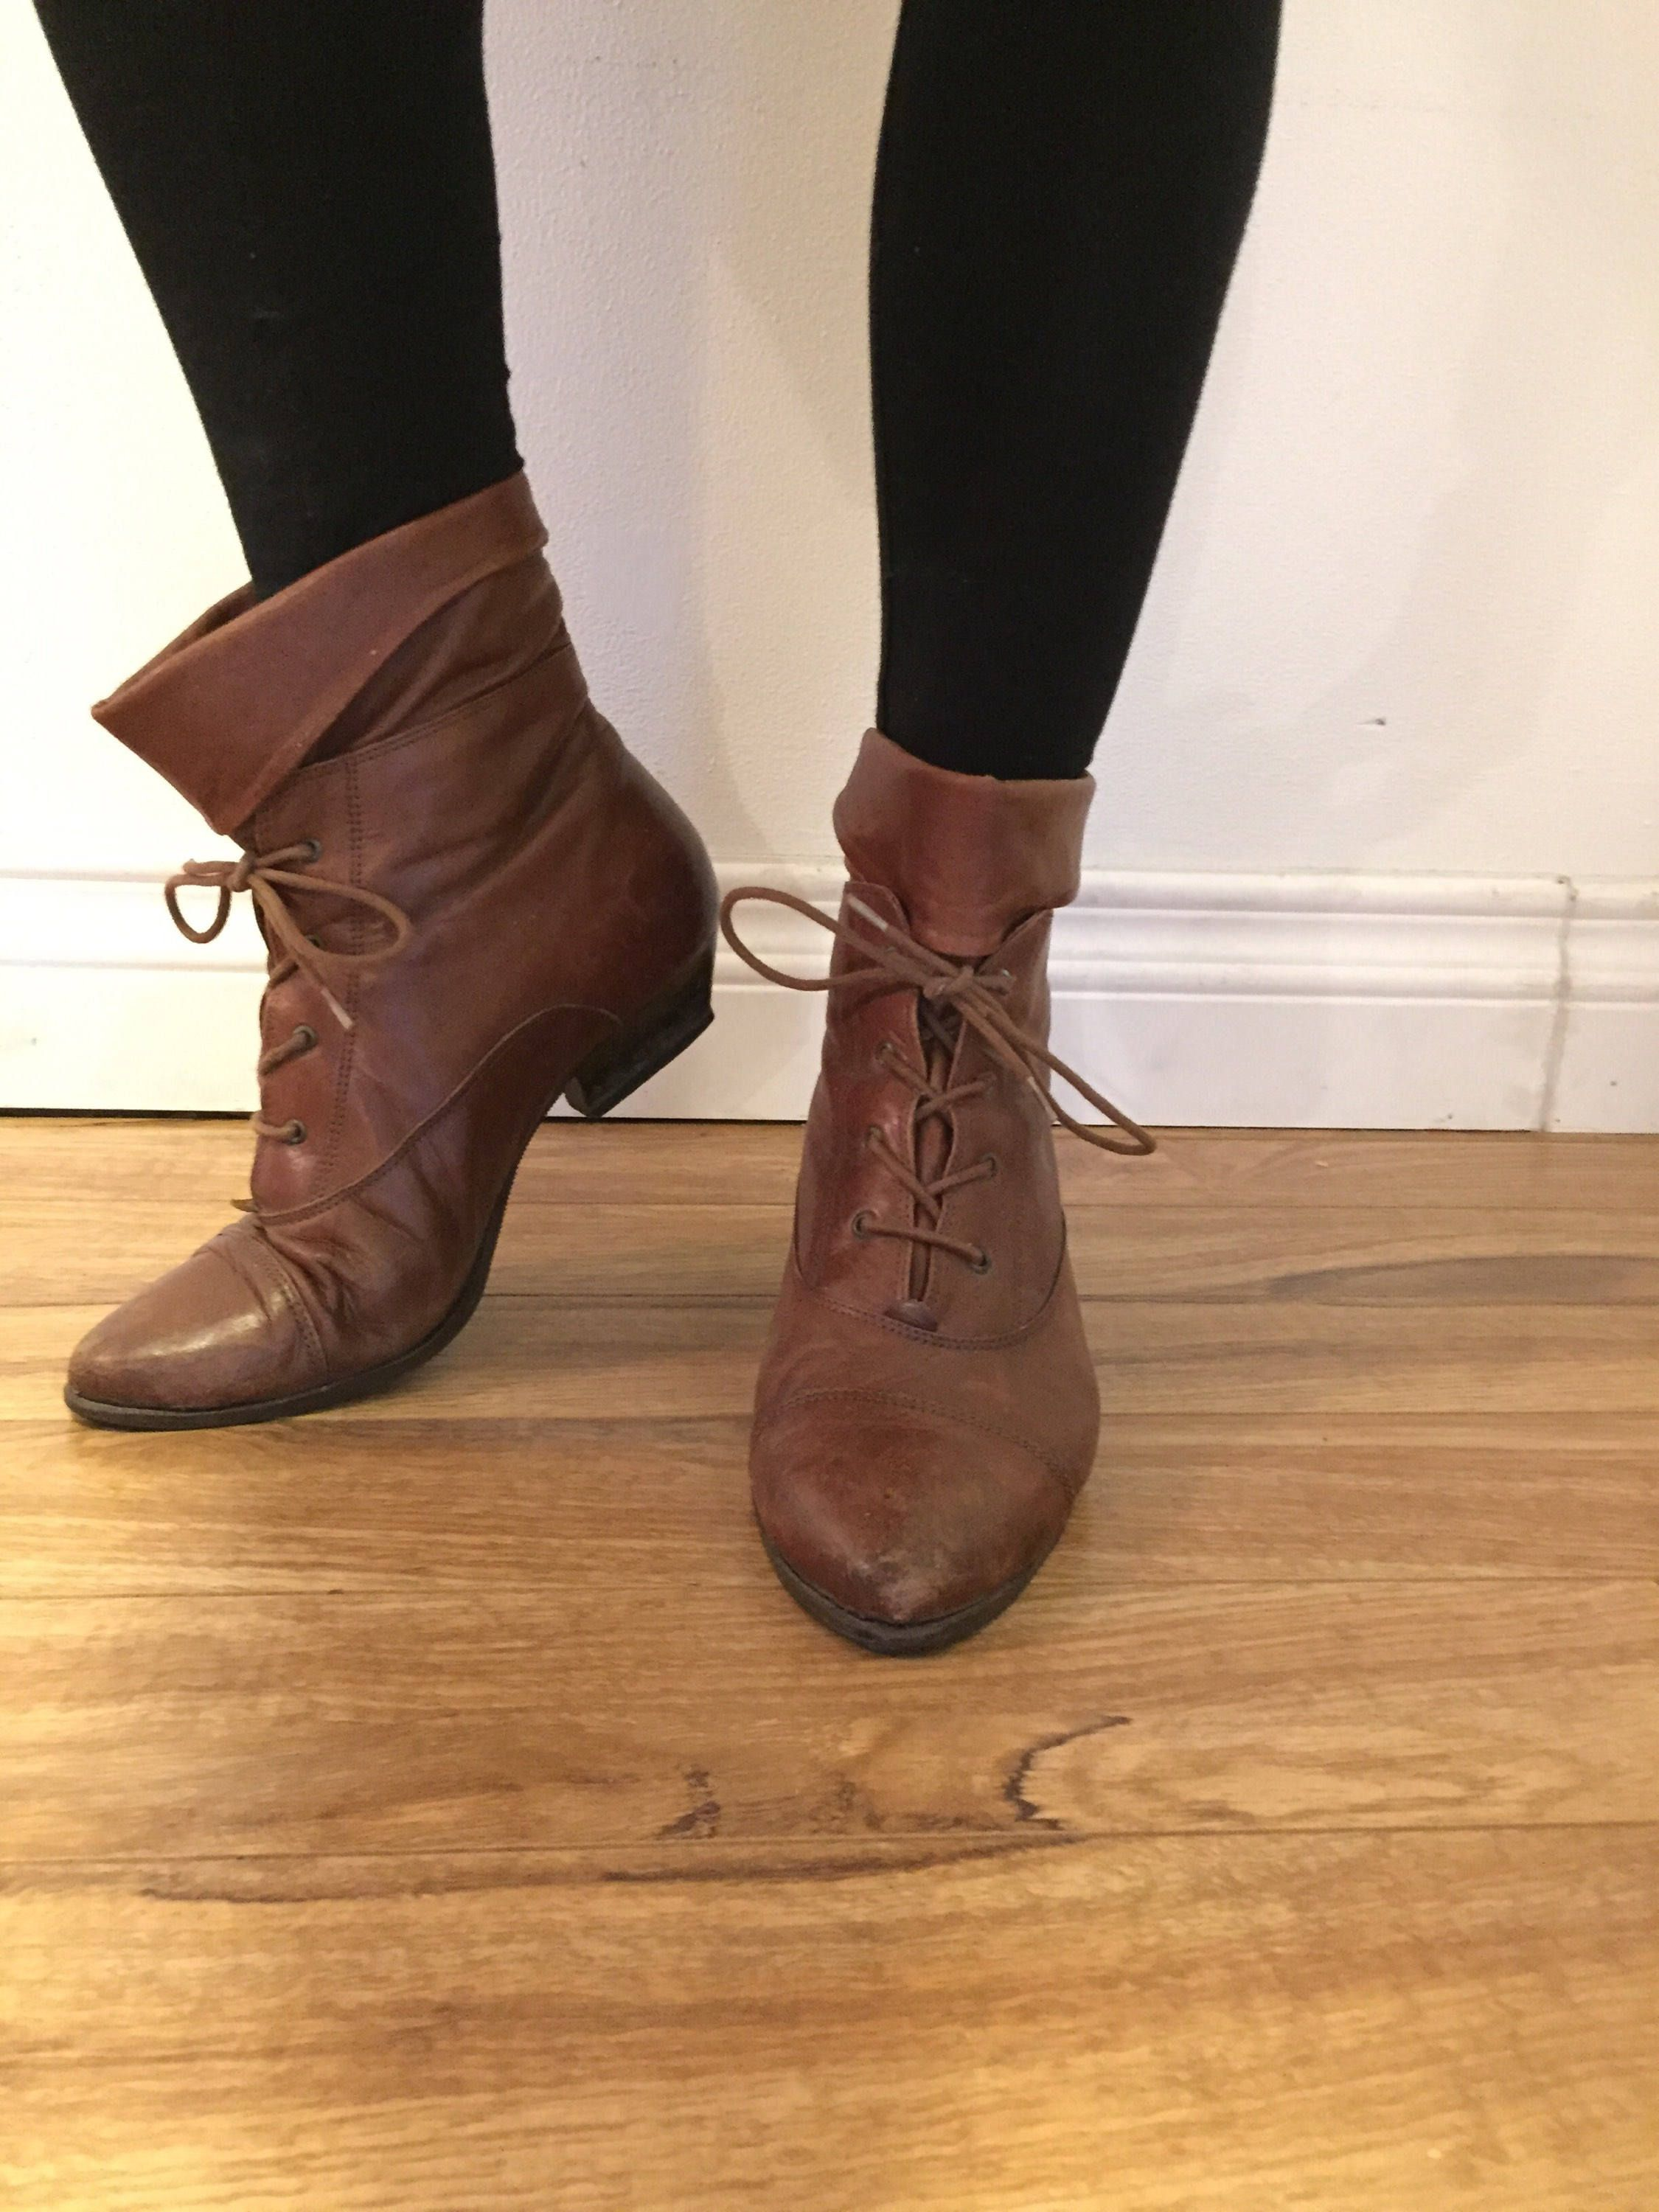 bc605dbba12ee Ankle Boots, 90s Brown Boots, Lace Up Boots, Flat, Pointed Toe ...